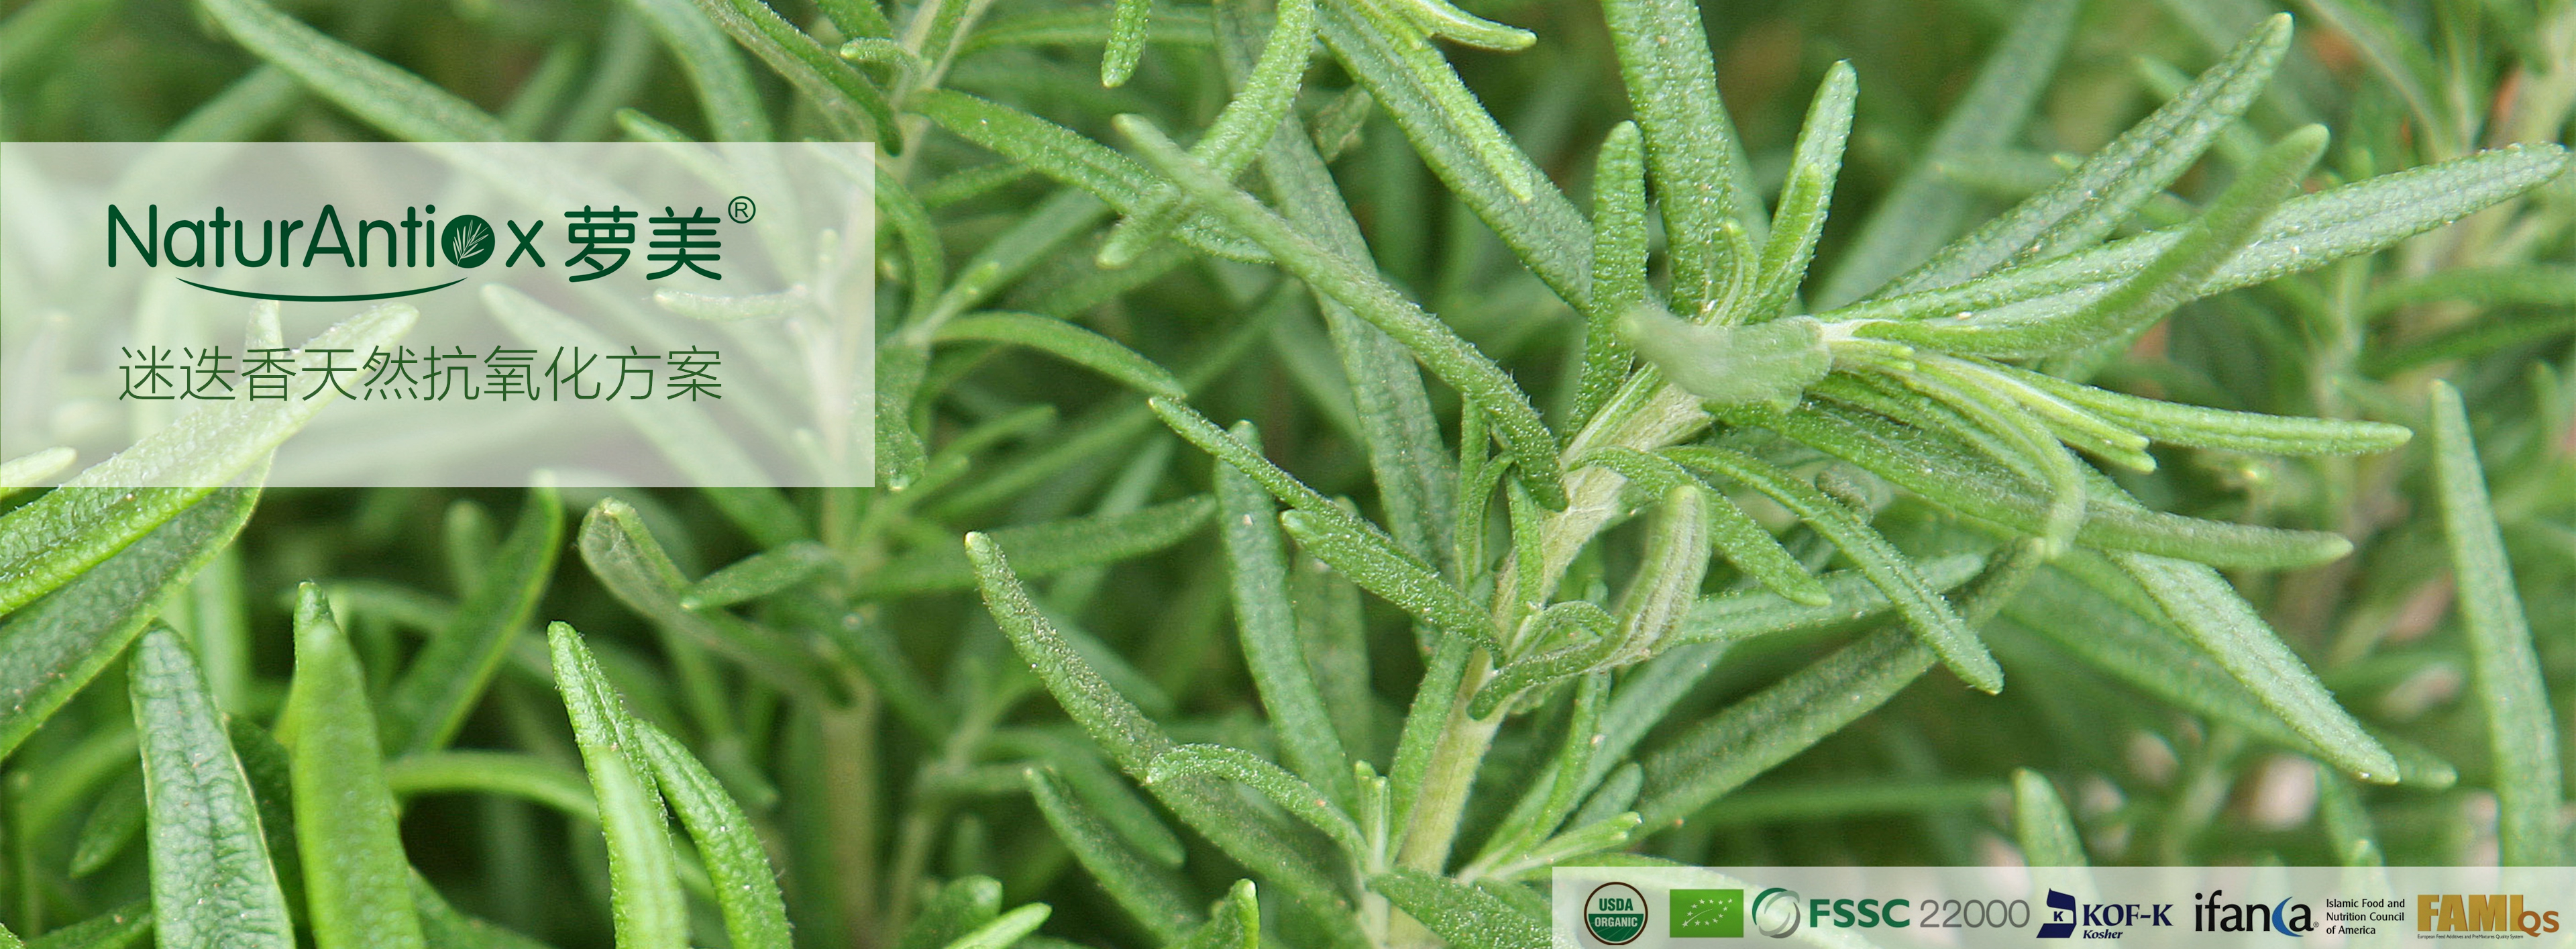 rosemary extracts-banner-CN